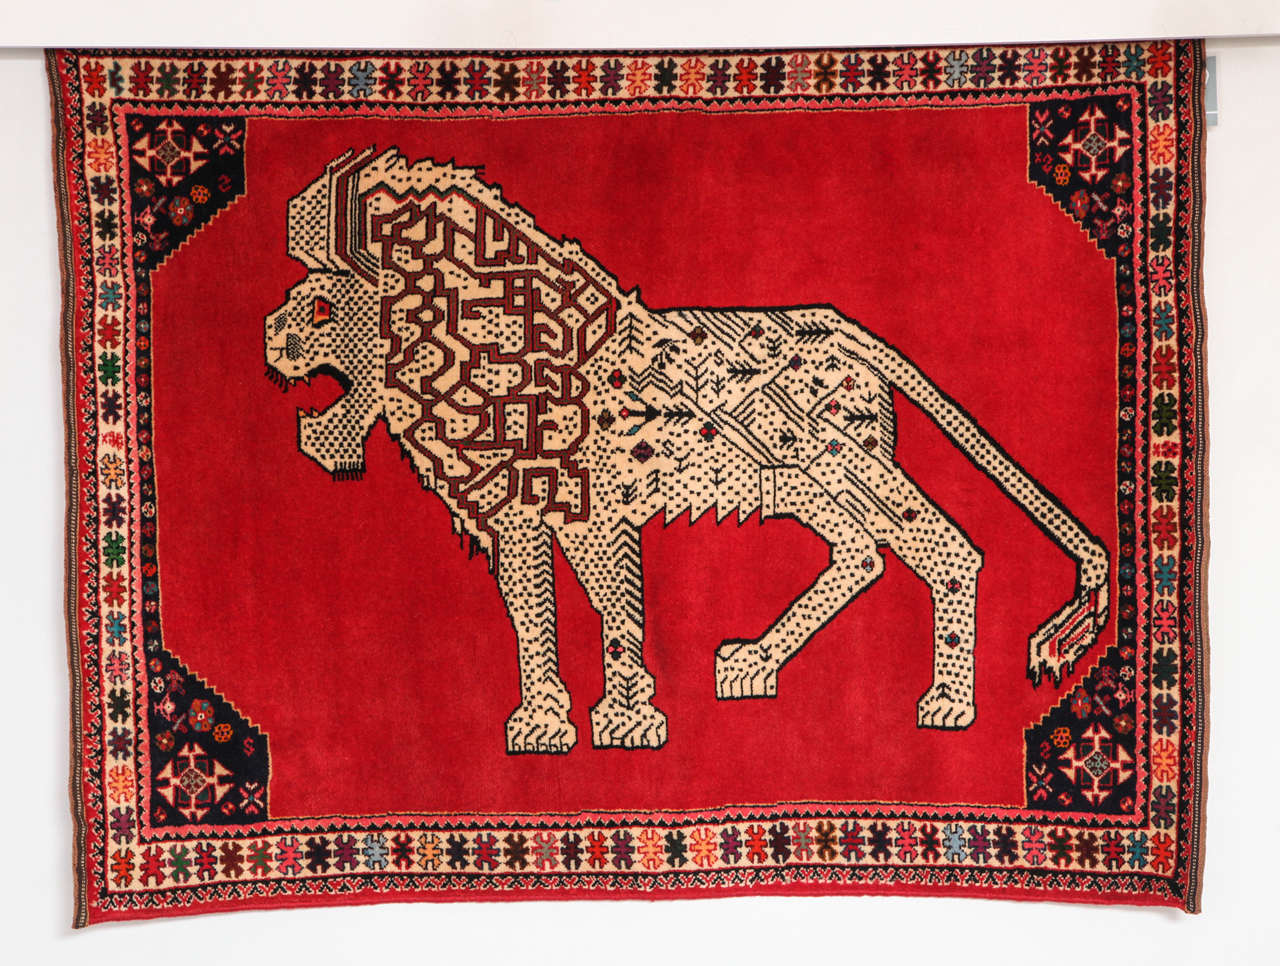 This Persian Qashqai carpet created, circa 1940 consists of a handspun wool warp, weft and hand-knotted pile and natural vegetable dyes. Its highly detailed central lion design is balanced by the carpet's strong red field and colorful geometric